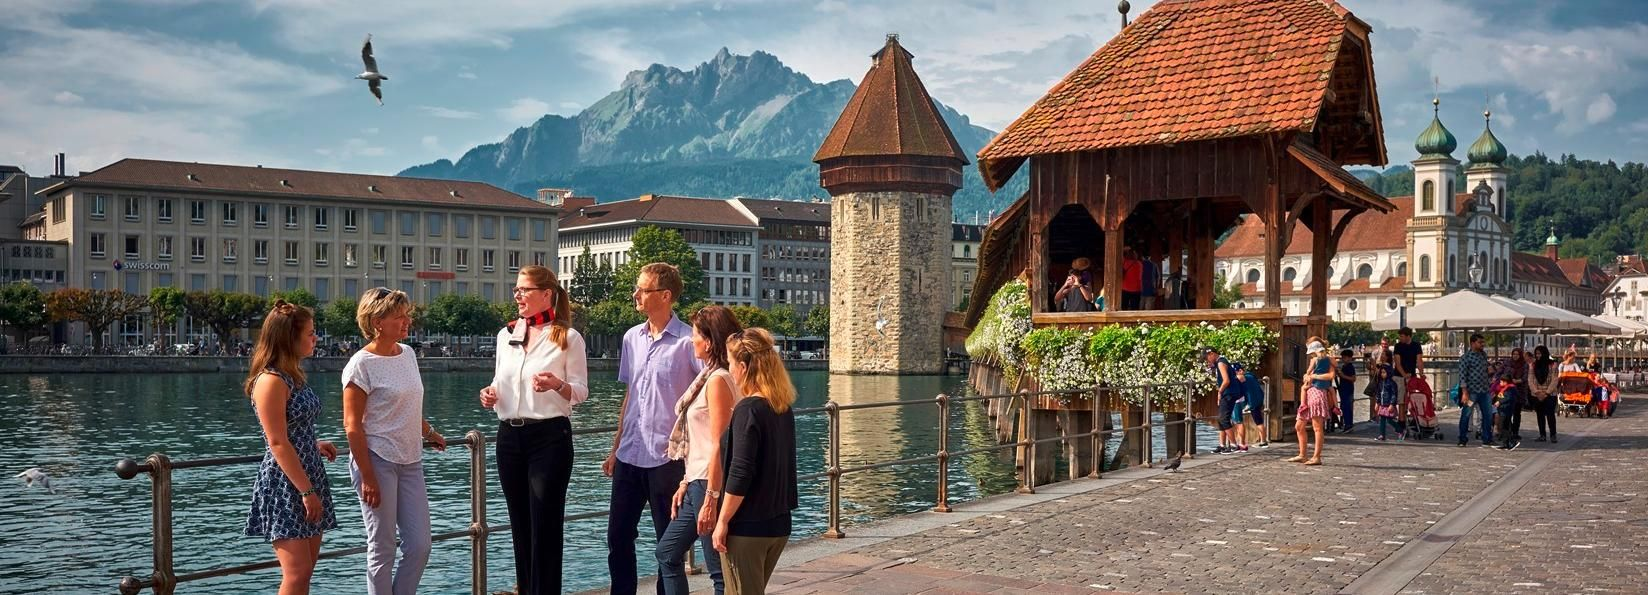 Guided City Tour of Lucerne - Private Group